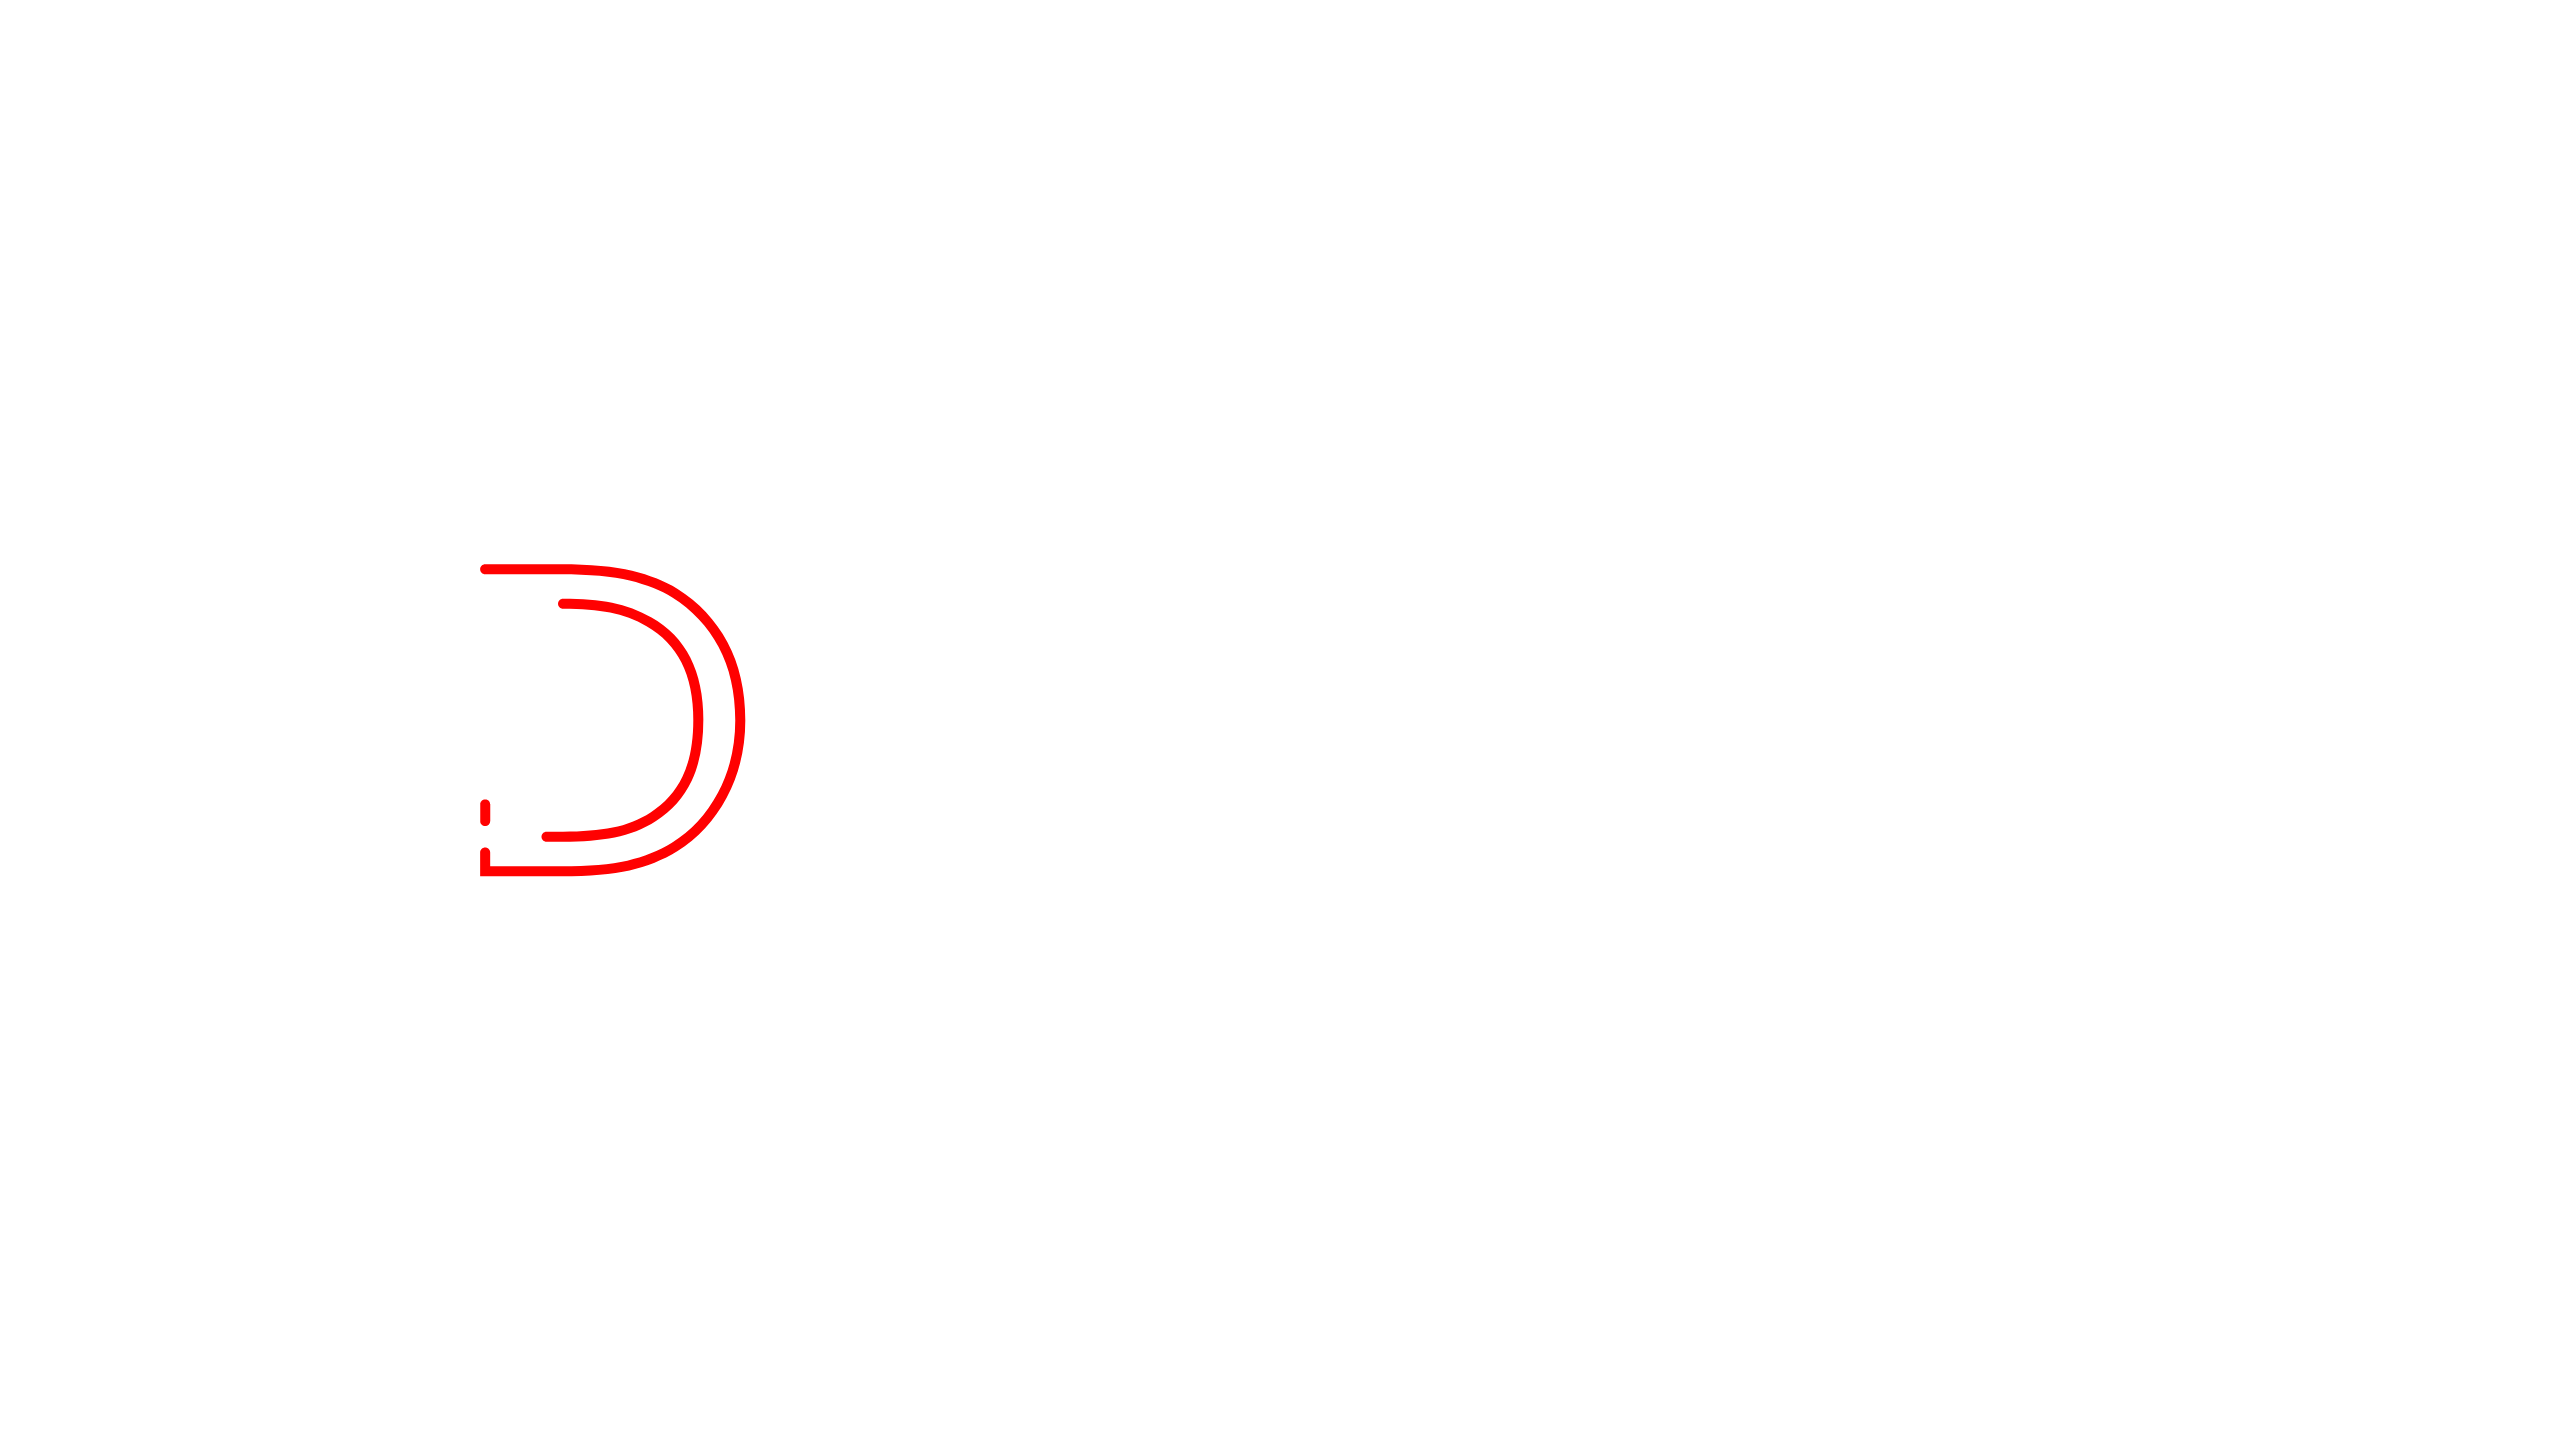 Dreamed Lifestyle